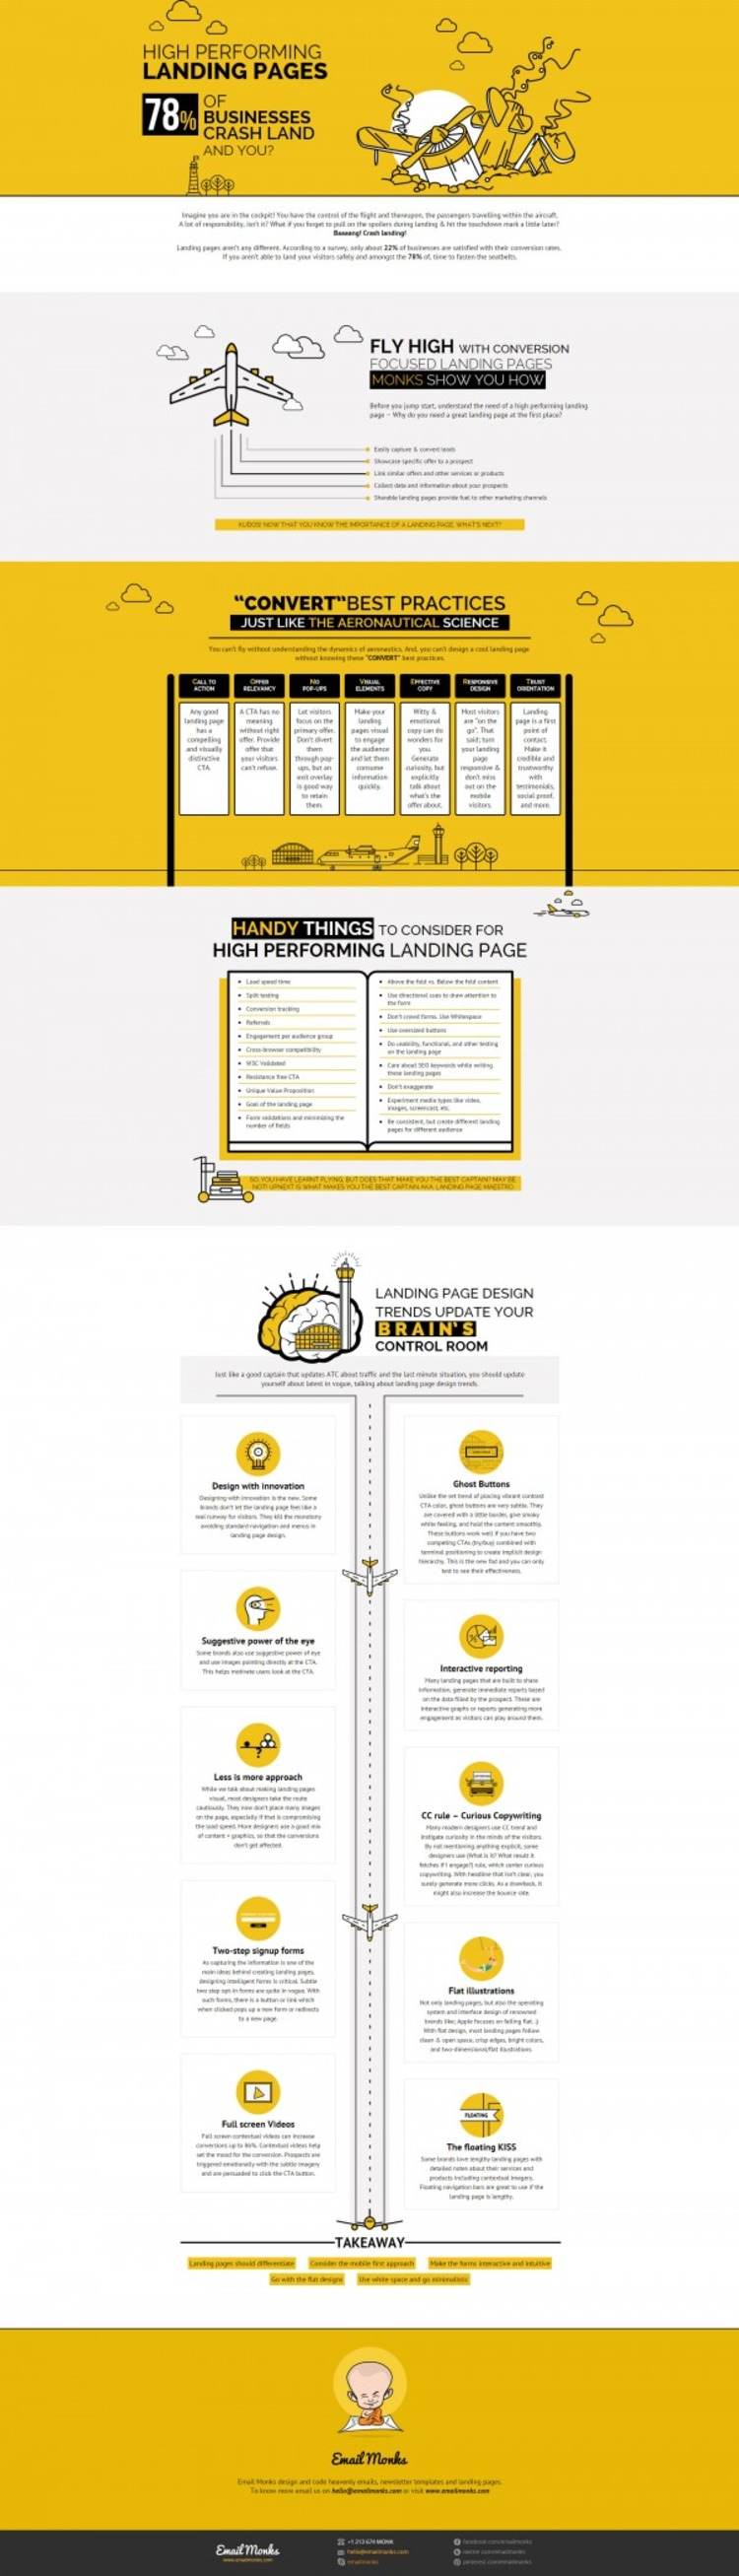 How to Build High-Performing Landing Pages [Infographic] - ShortStack | The Marketing Technology Alert | Scoop.it